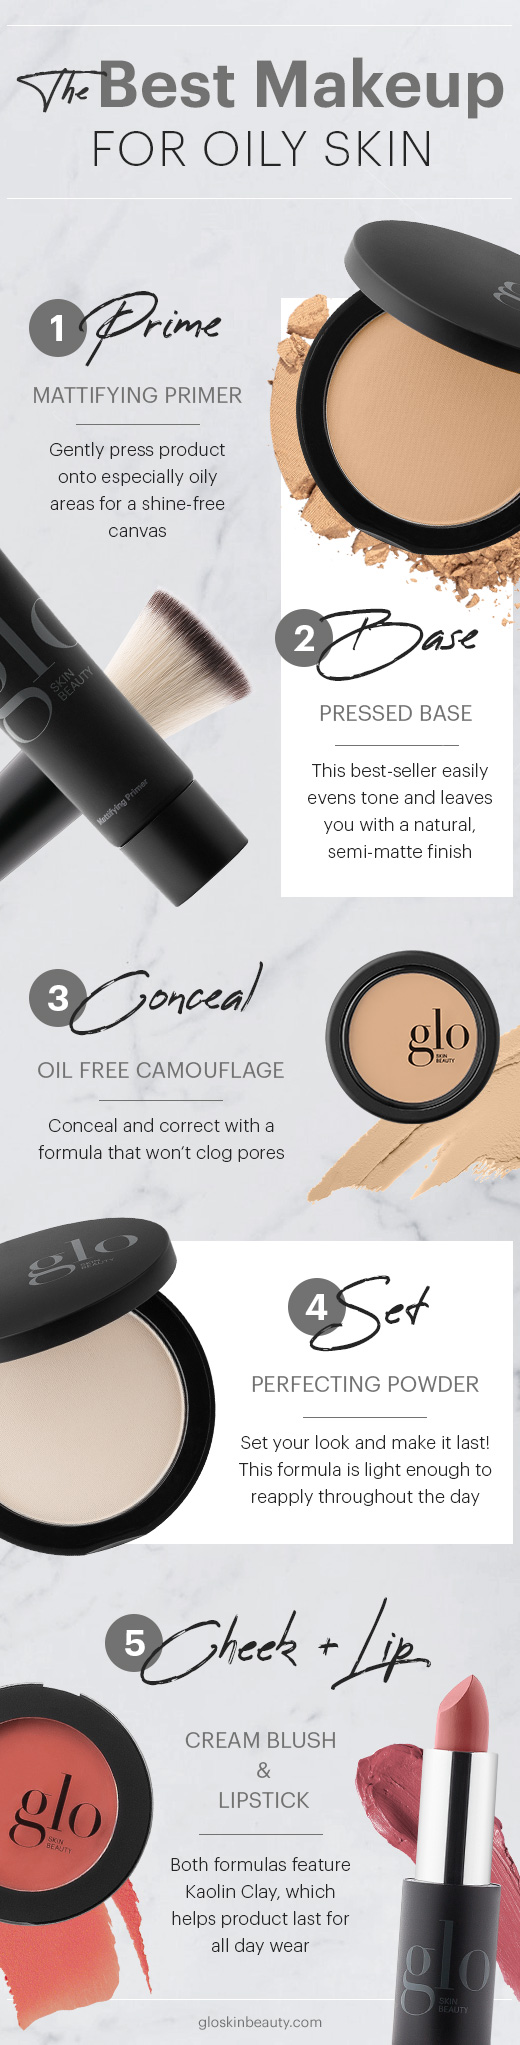 Infographic: The Best Makeup for Oily Skin